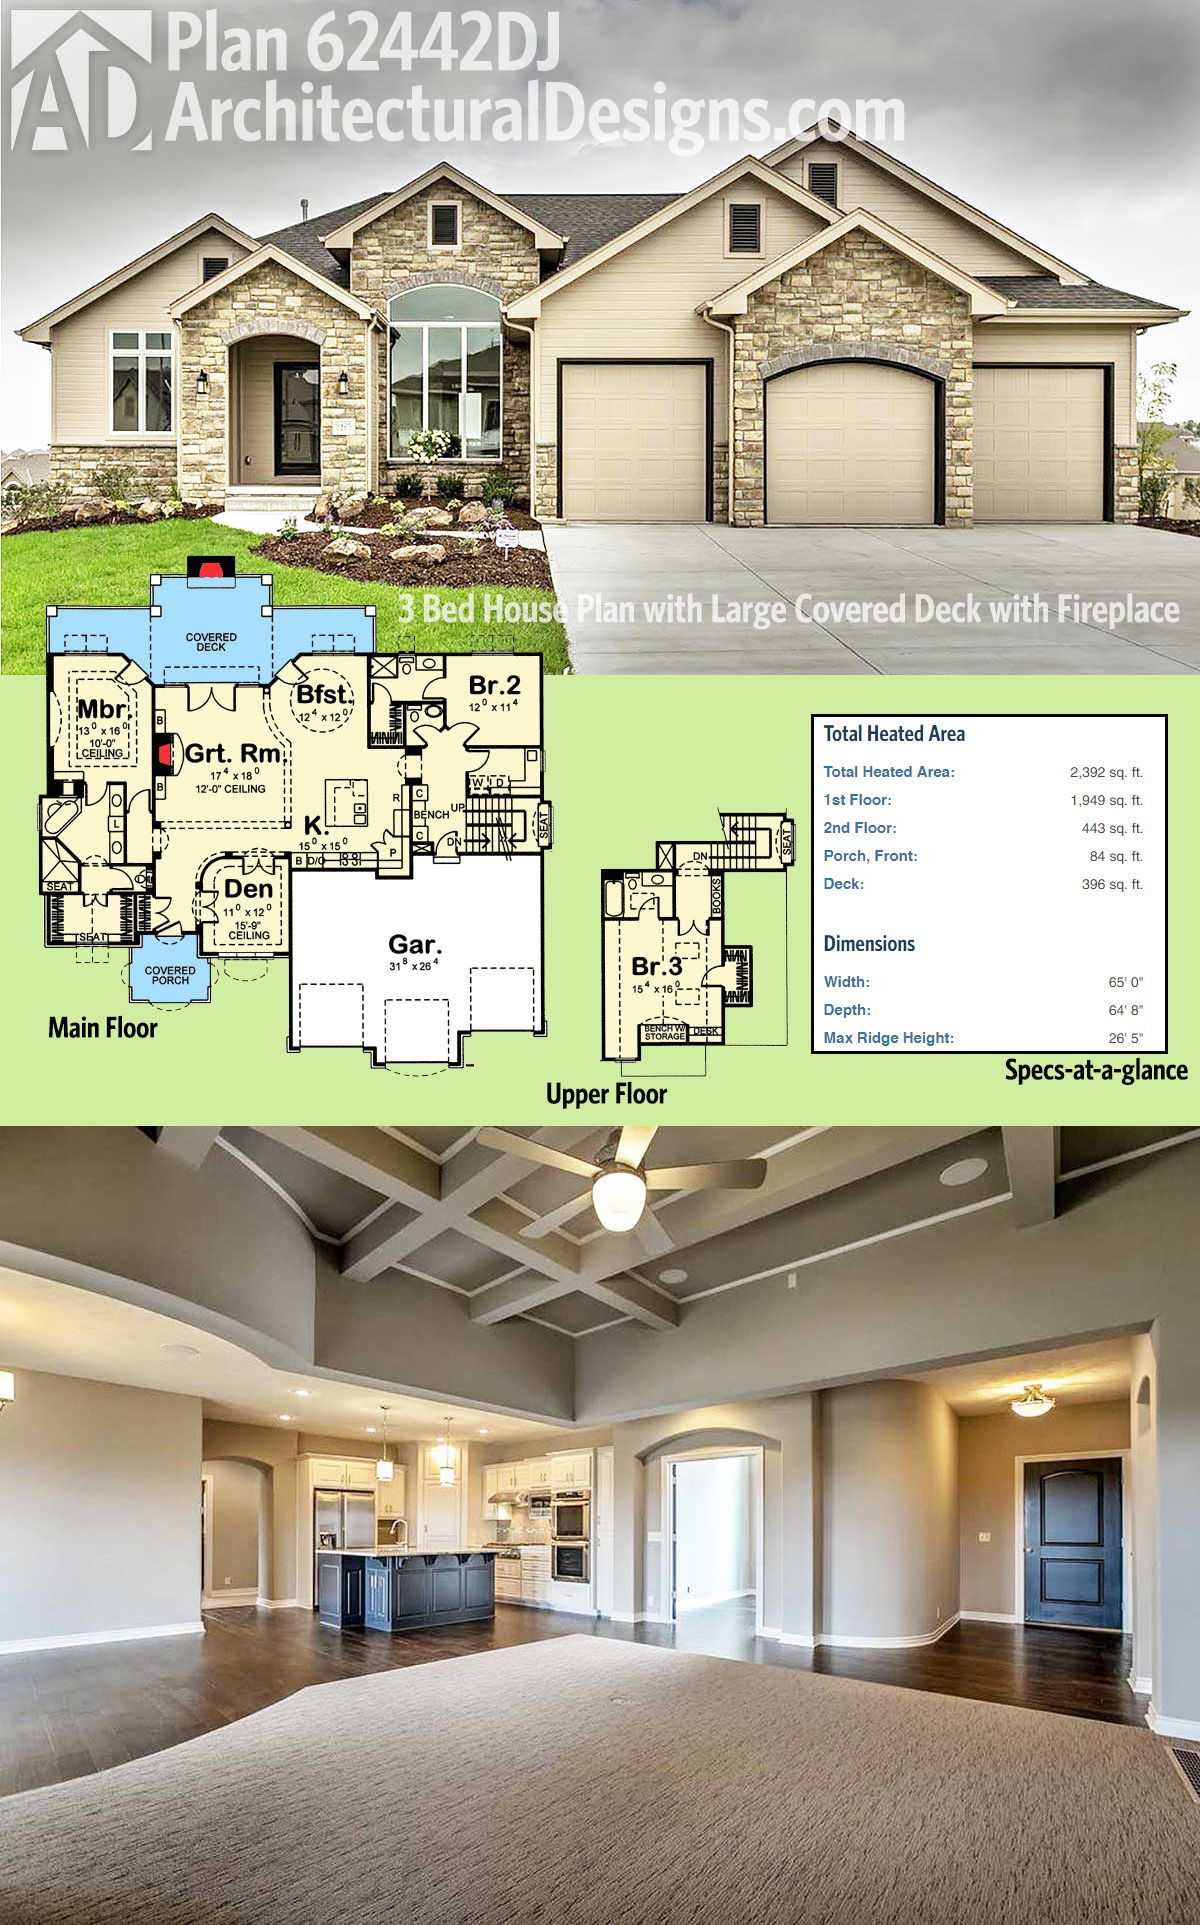 A Frame Cabin Plans 2 Bedroom A Frame Cabin Plans Free Do: Plan 62442DJ: 3 Bed House Plan With Large Covered Deck